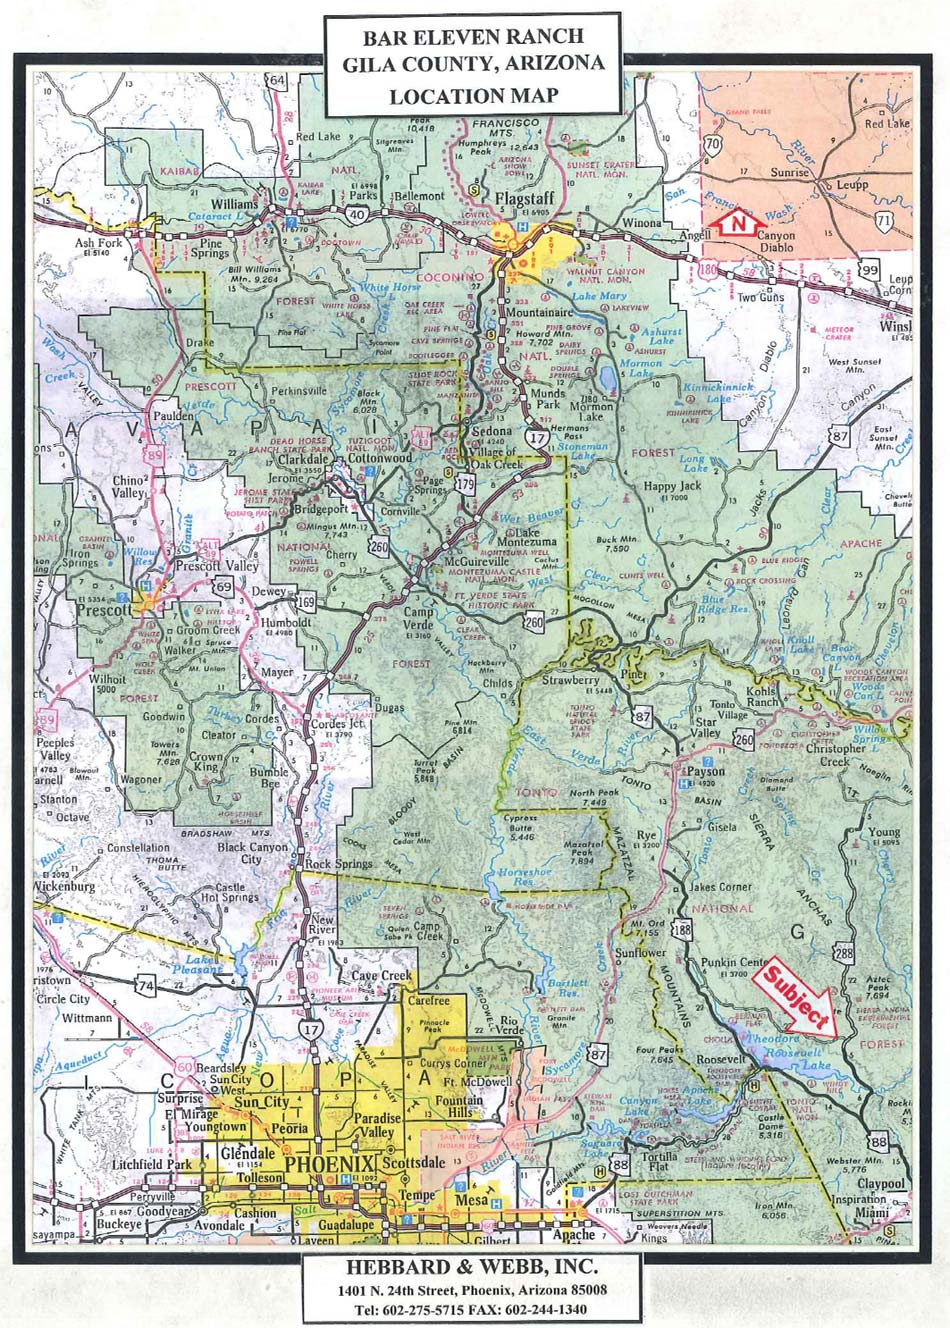 maps of arizona with Bar Eleven Ranch Maps on Bar Eleven Ranch Maps likewise 4356744 further 57921720 besides Lucy Li also 5101051.